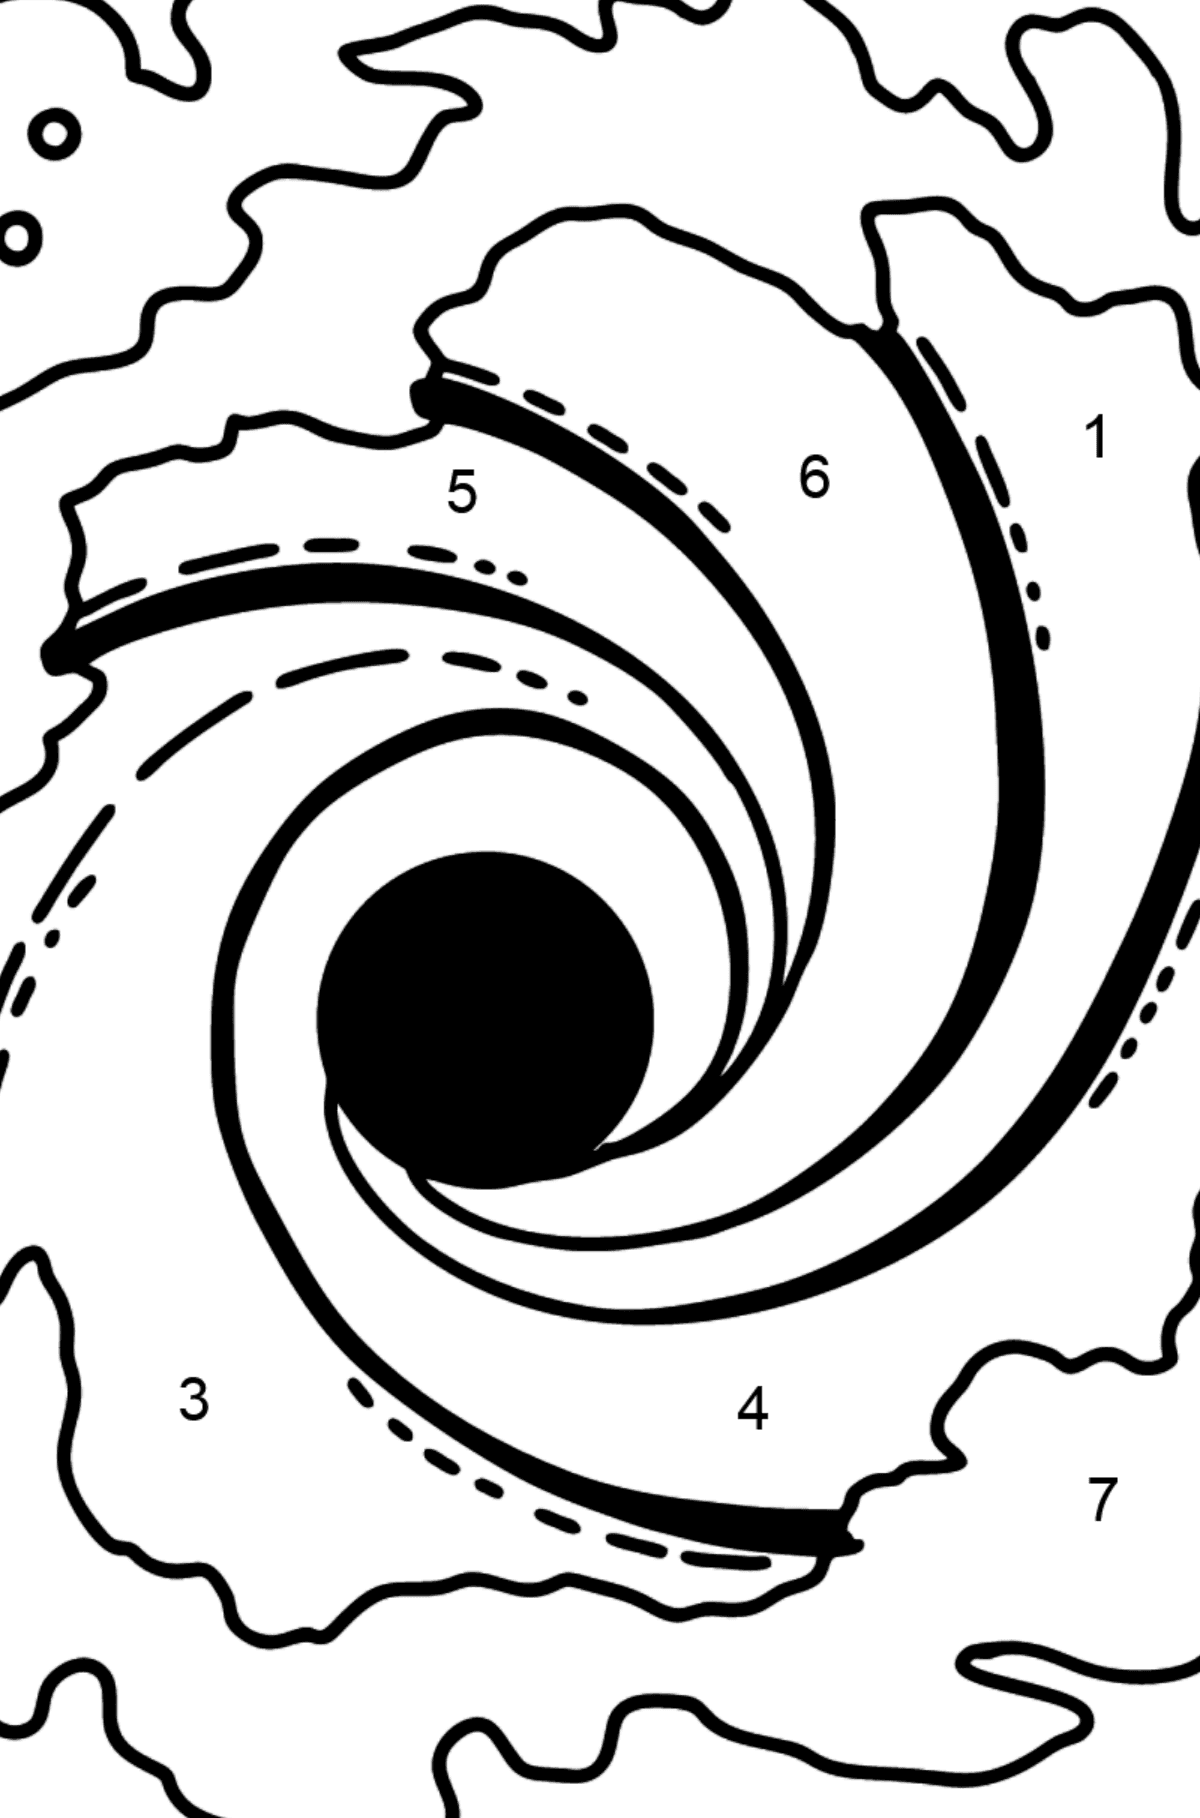 Black Hole coloring page - Coloring by Numbers for Kids